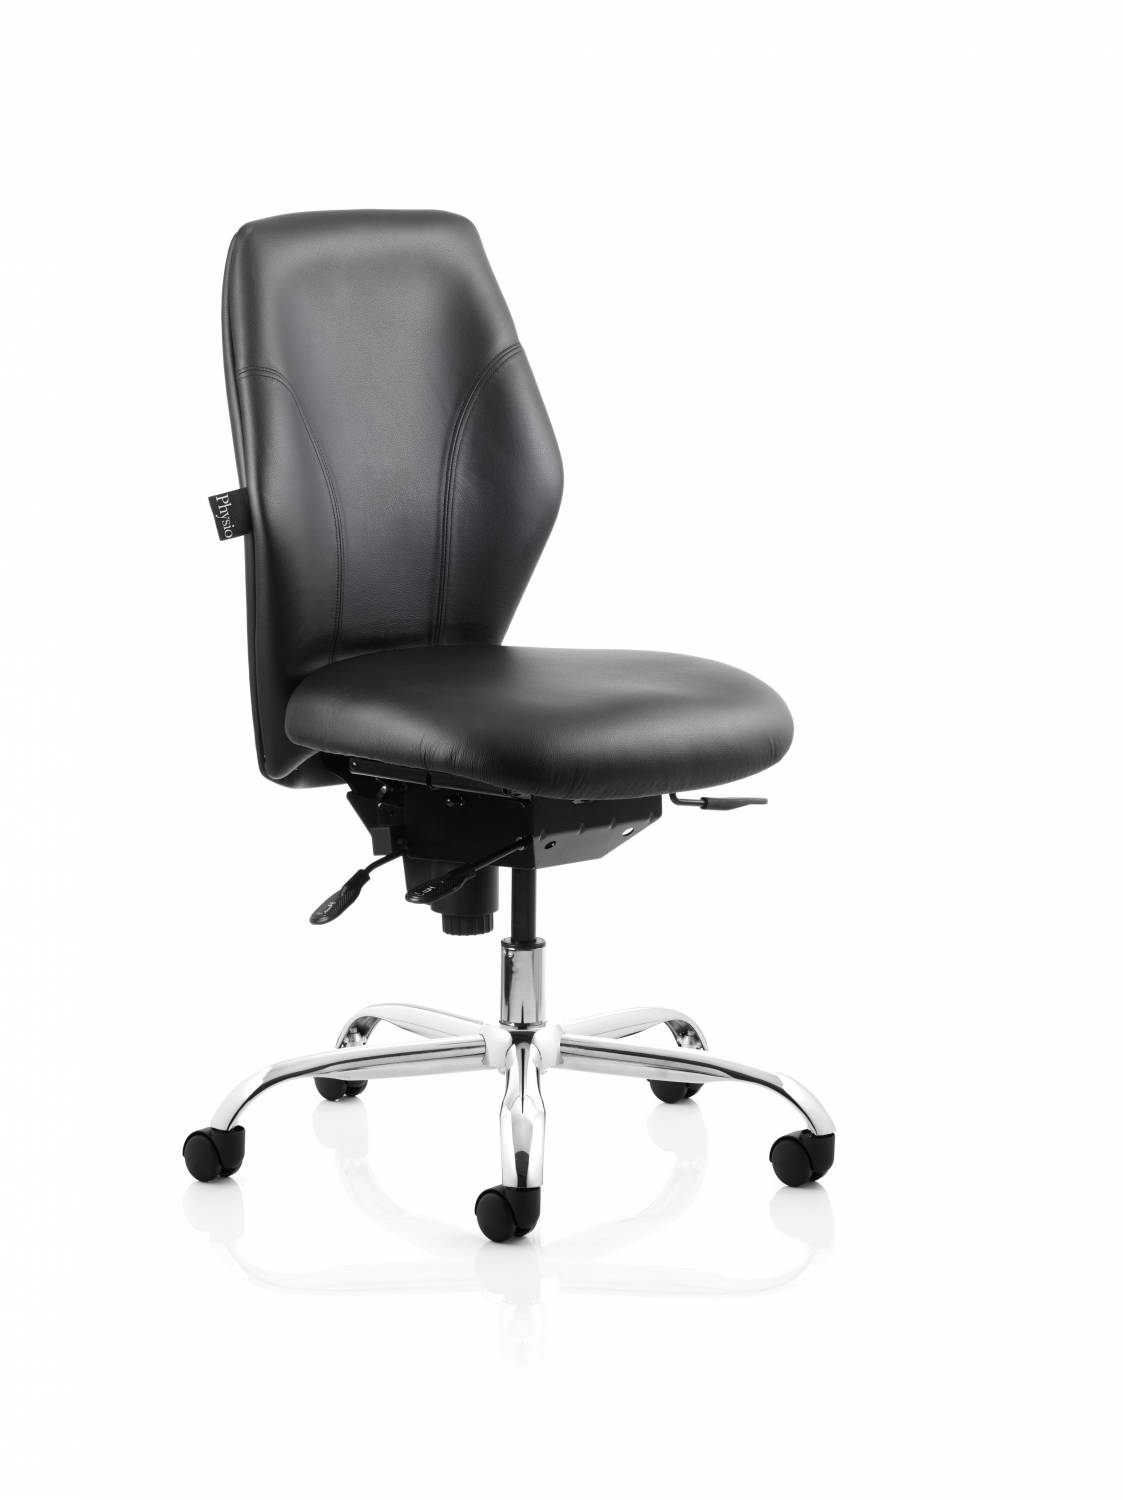 posture promoting chair wedding types ocee design physio unique anatomically designed cut foam back and dual density moulded memory seat the has been developed to promote correct seating